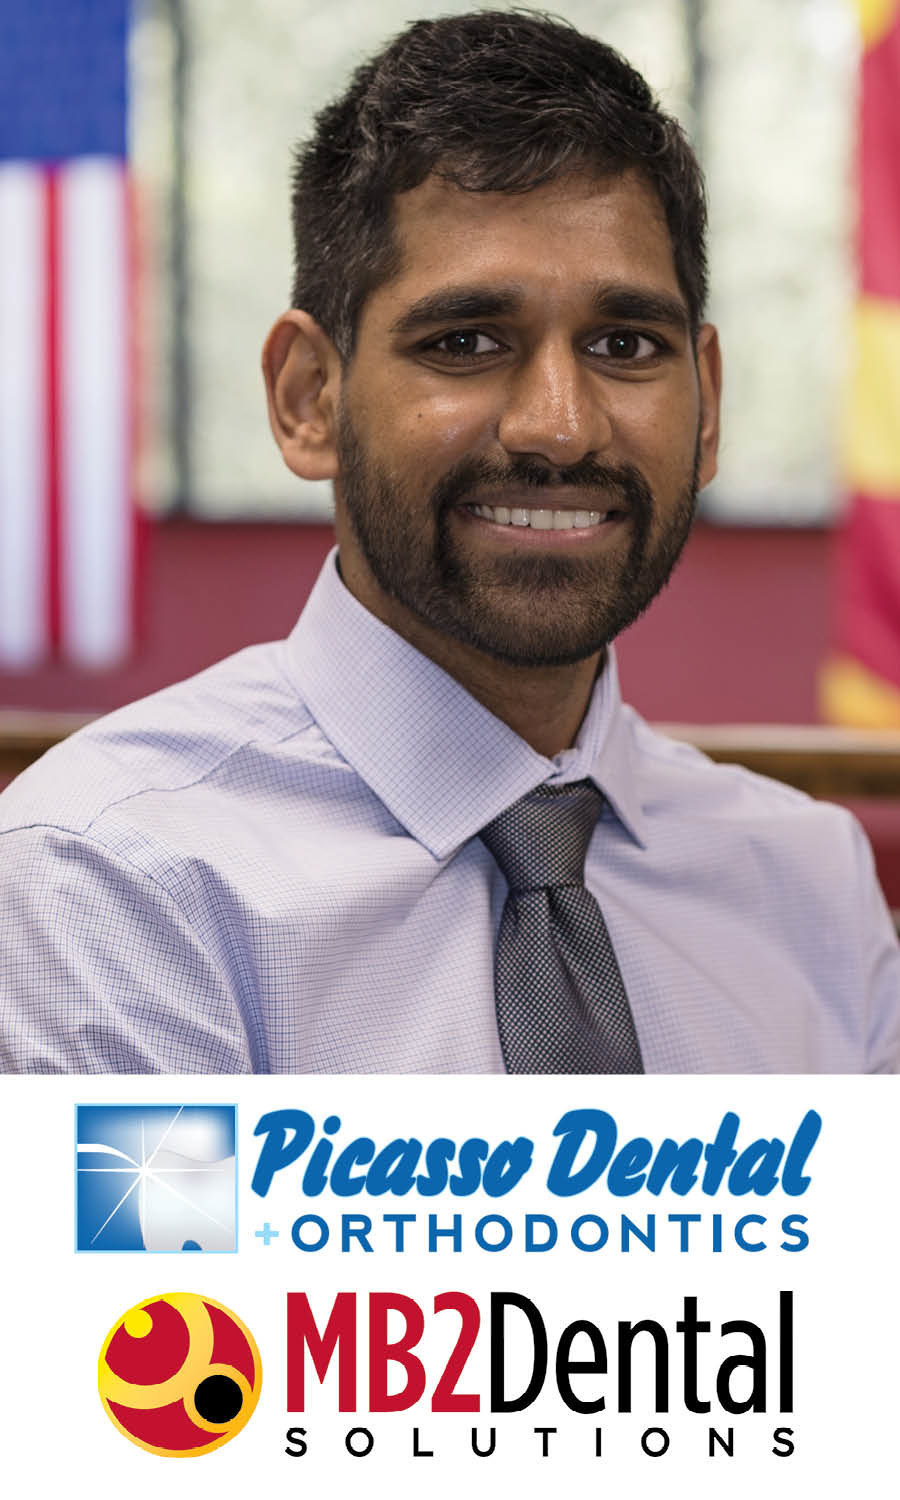 """Helping people through dental care is a big passion of mine,"" said Dr. Rishank Korupolu, owner of the new Picasso Dental + Orthodontics in Seagoville."